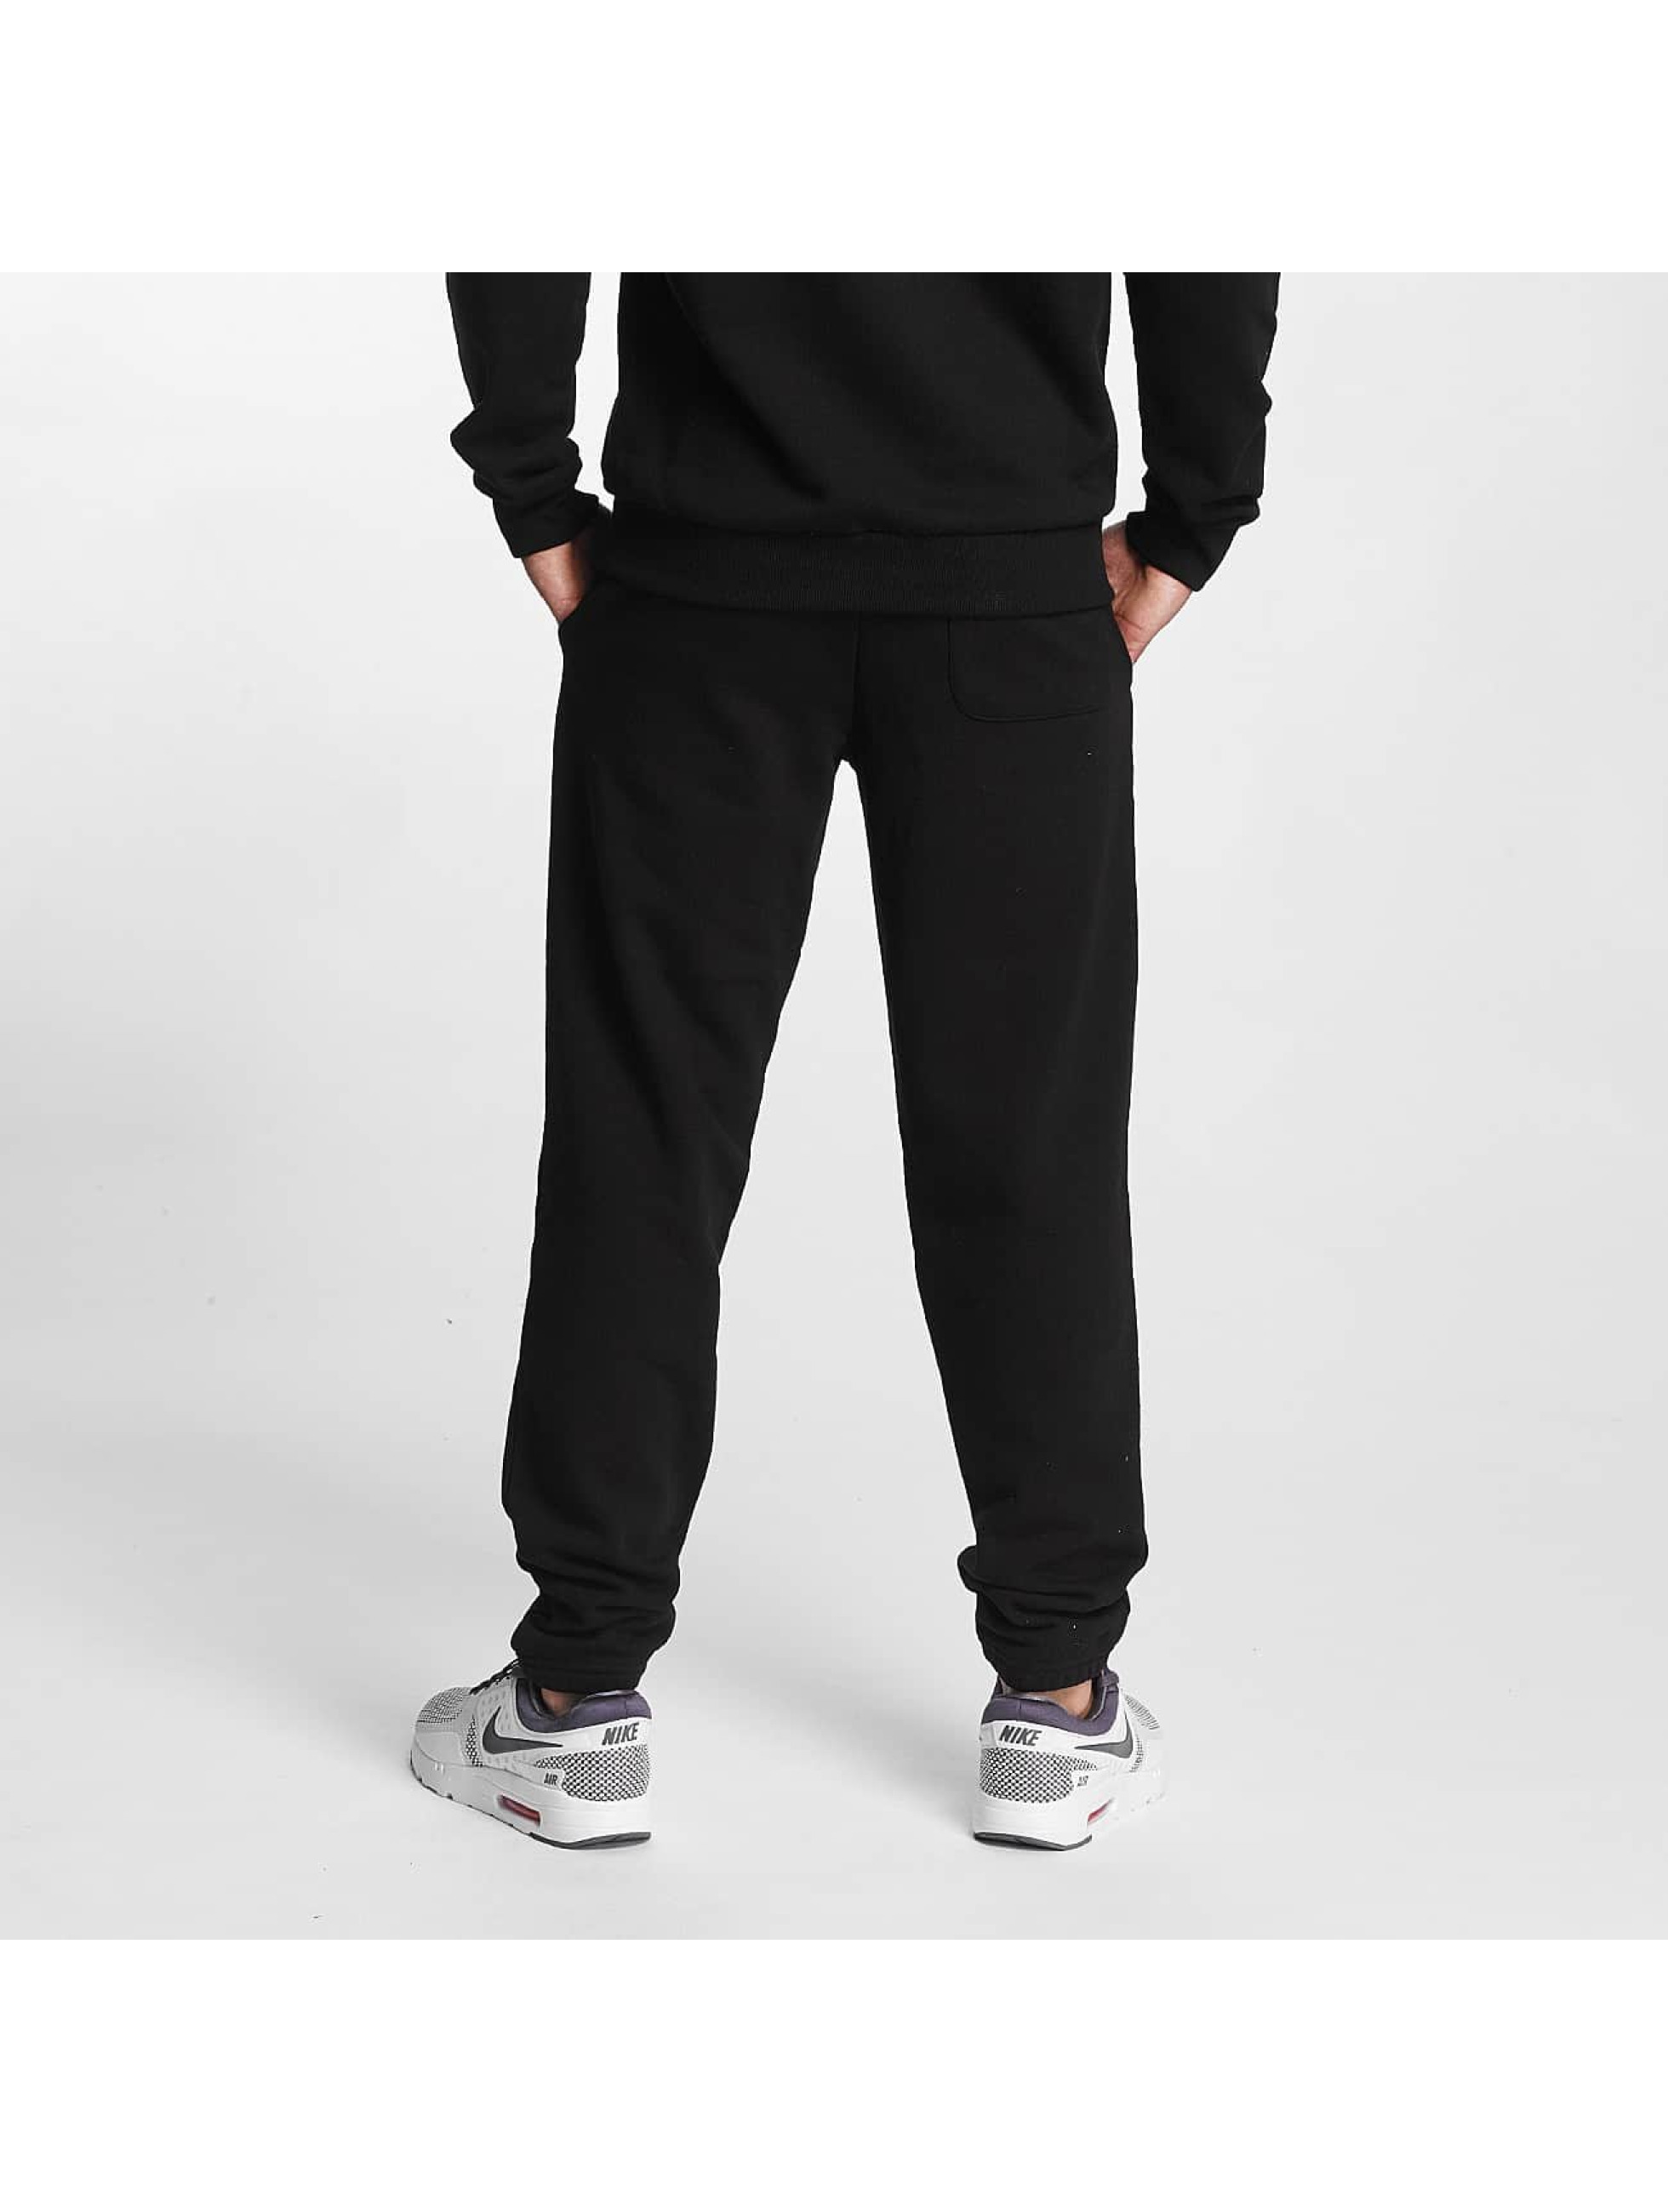 Lonsdale London joggingbroek Goole zwart